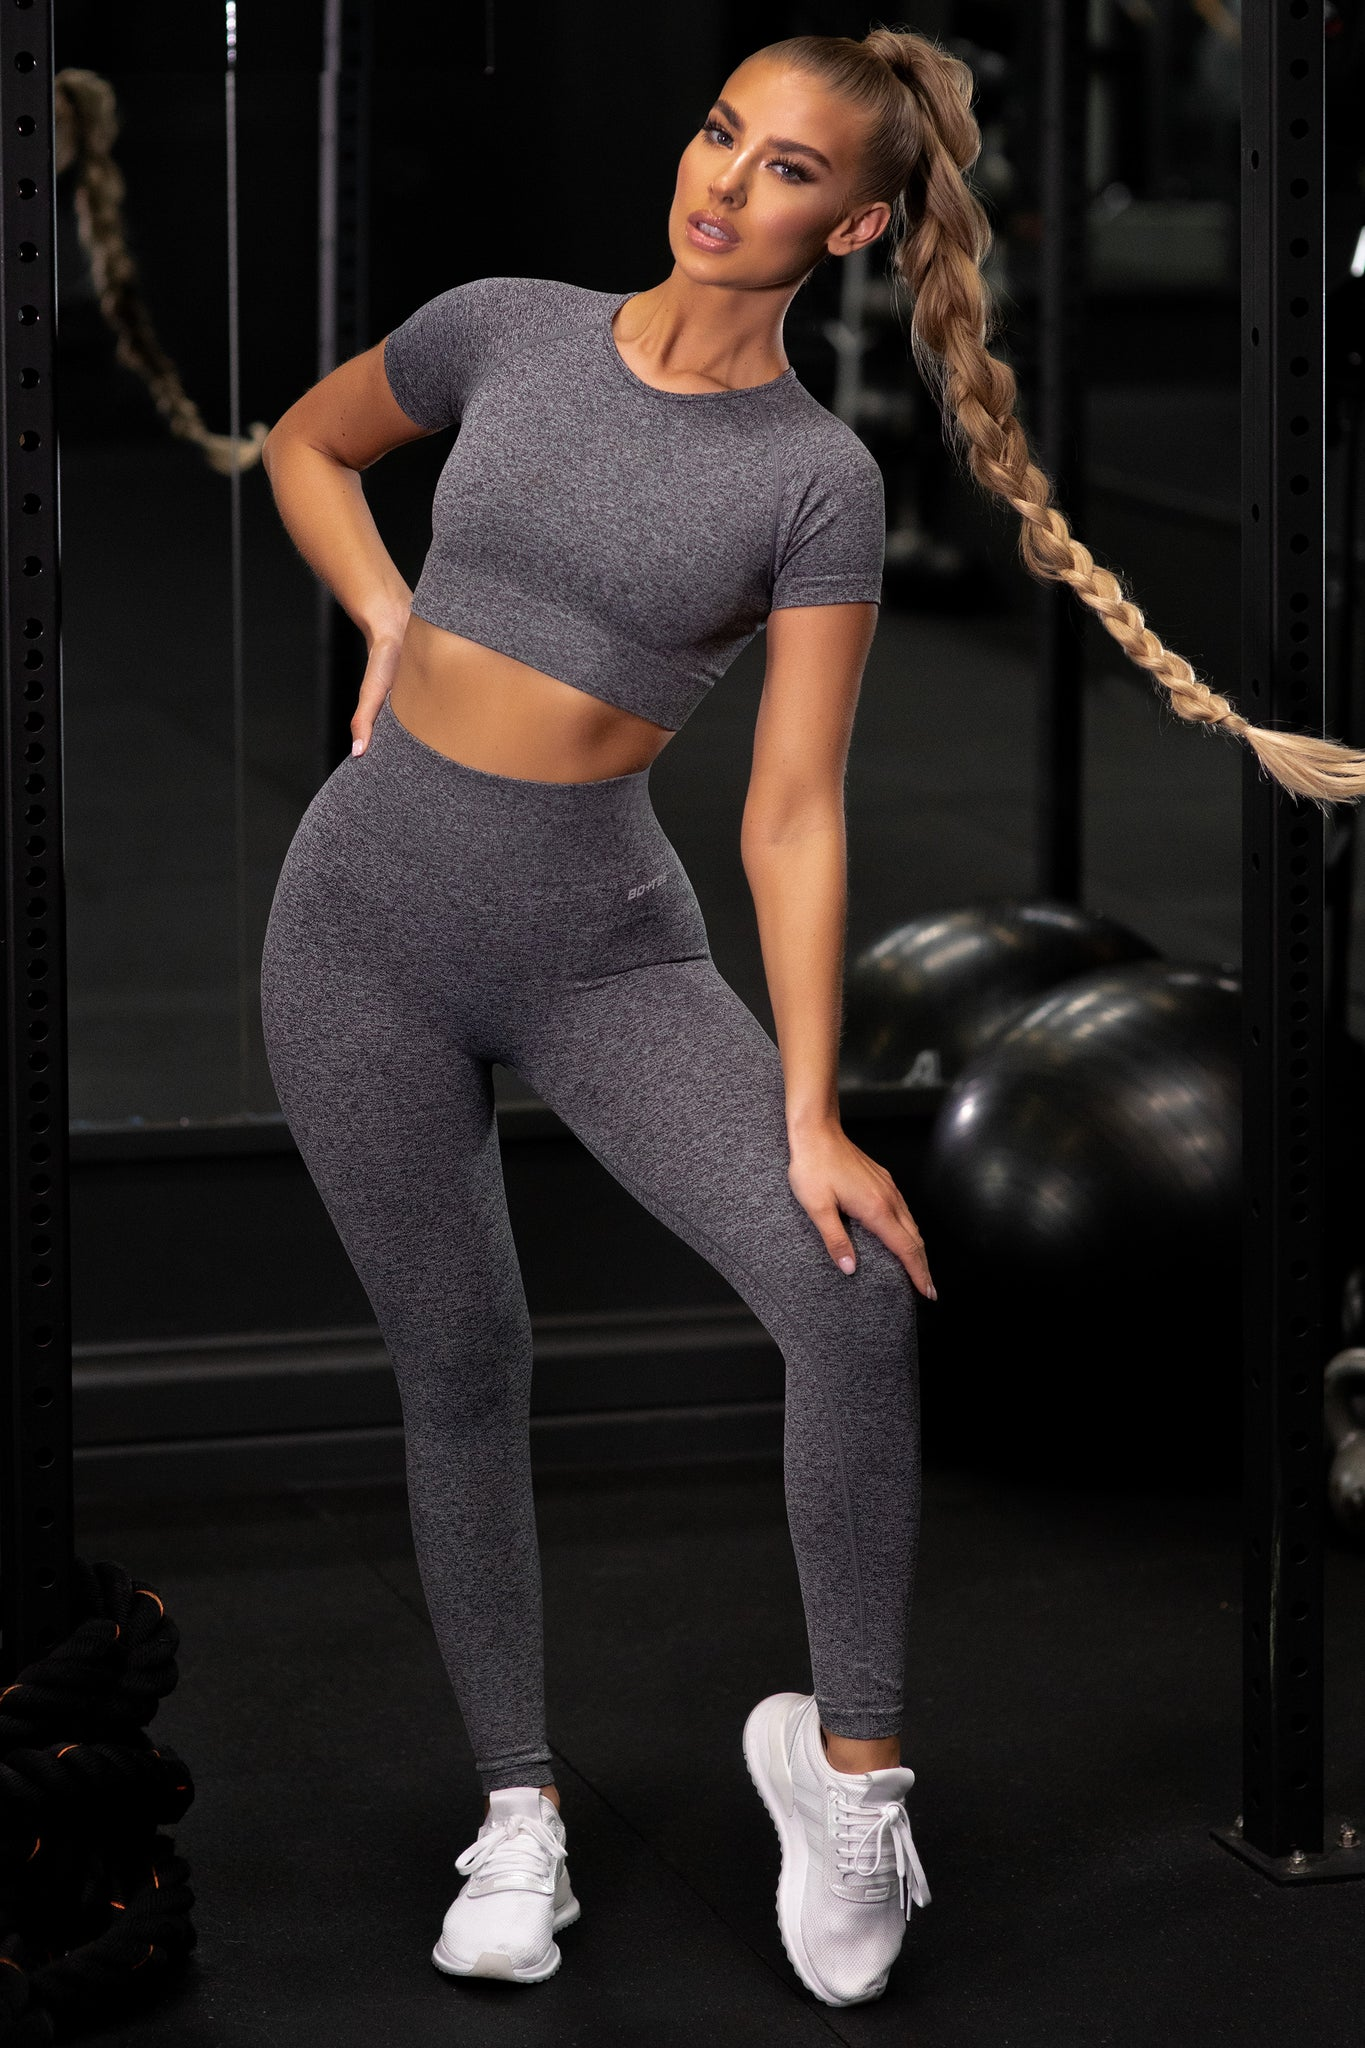 Plain black marl seamless high waisted full length gym leggings. Image 1 of 6.